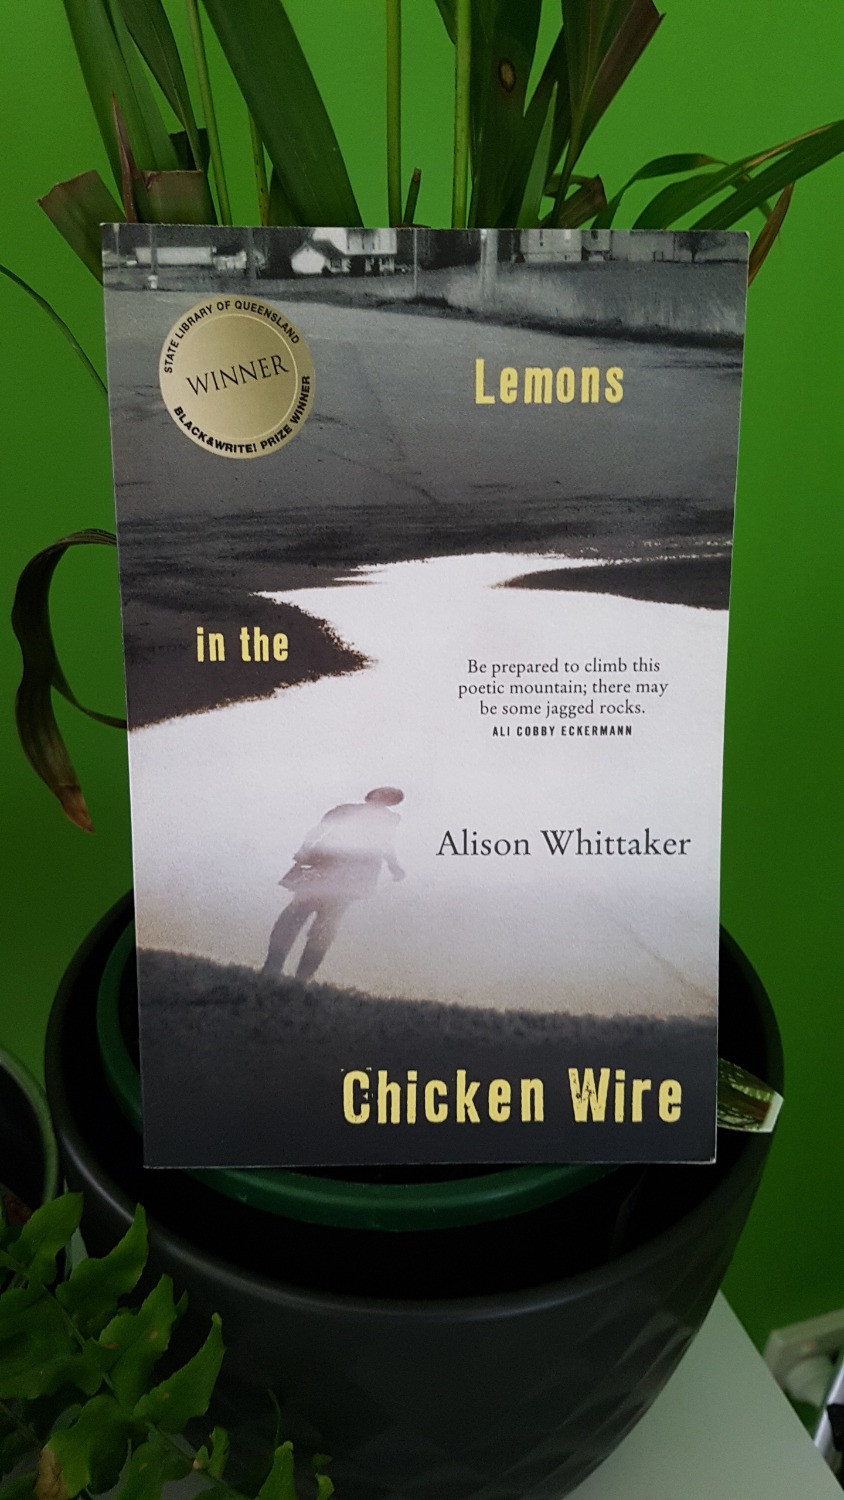 Photo of Lemons in the Chicken Wire, Alison Whittaker.